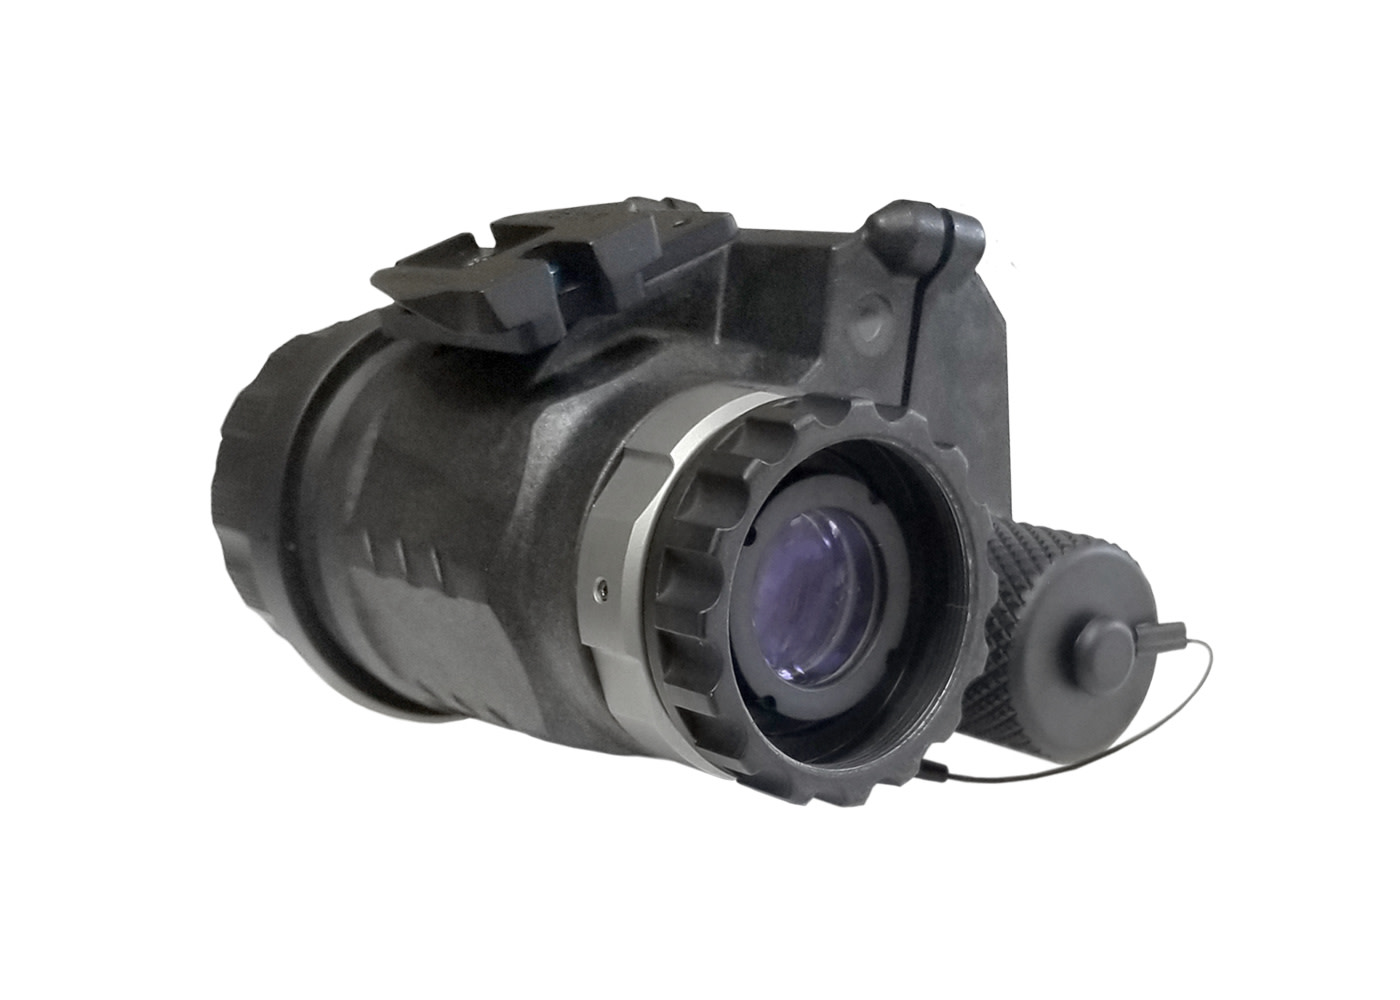 PRG Defense PVS-14 Omega NL1 Mil Spec Night Vision Monocular - Gen 2+ Level 1